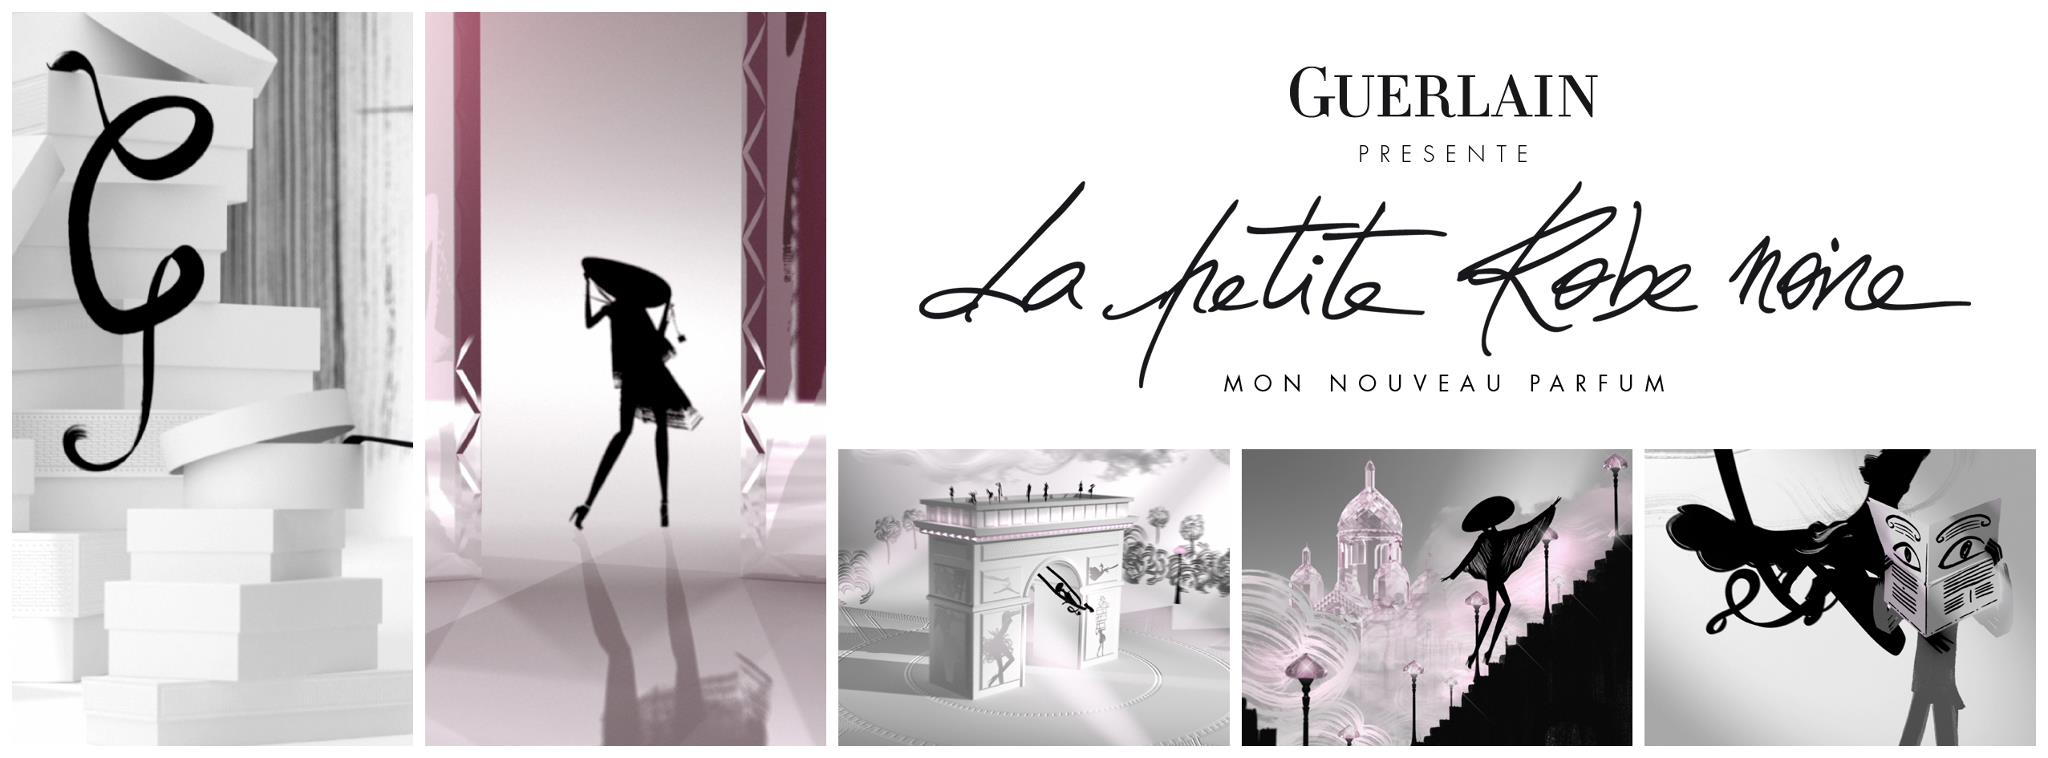 La petite robe noire by guerlain and kuntzel deygasluxury news best of luxury interviews - La petite robe noire guerlain ...